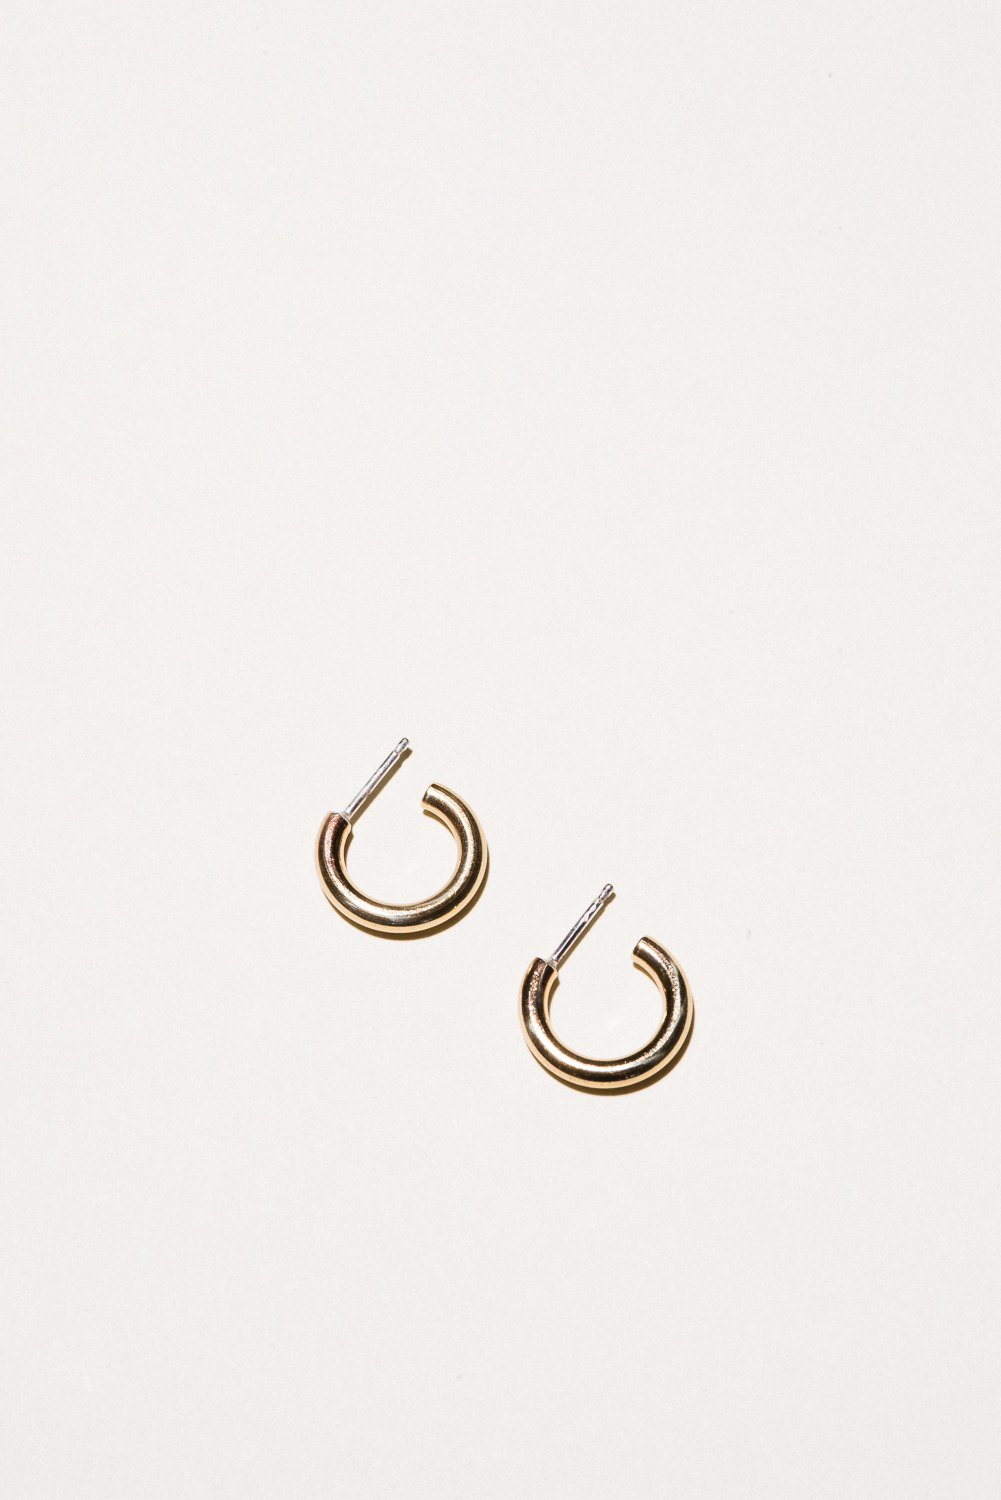 Small Brass Classic Hoops - .6 in diameterJewelers Brass, Lacquer FinishHand Smithed$40